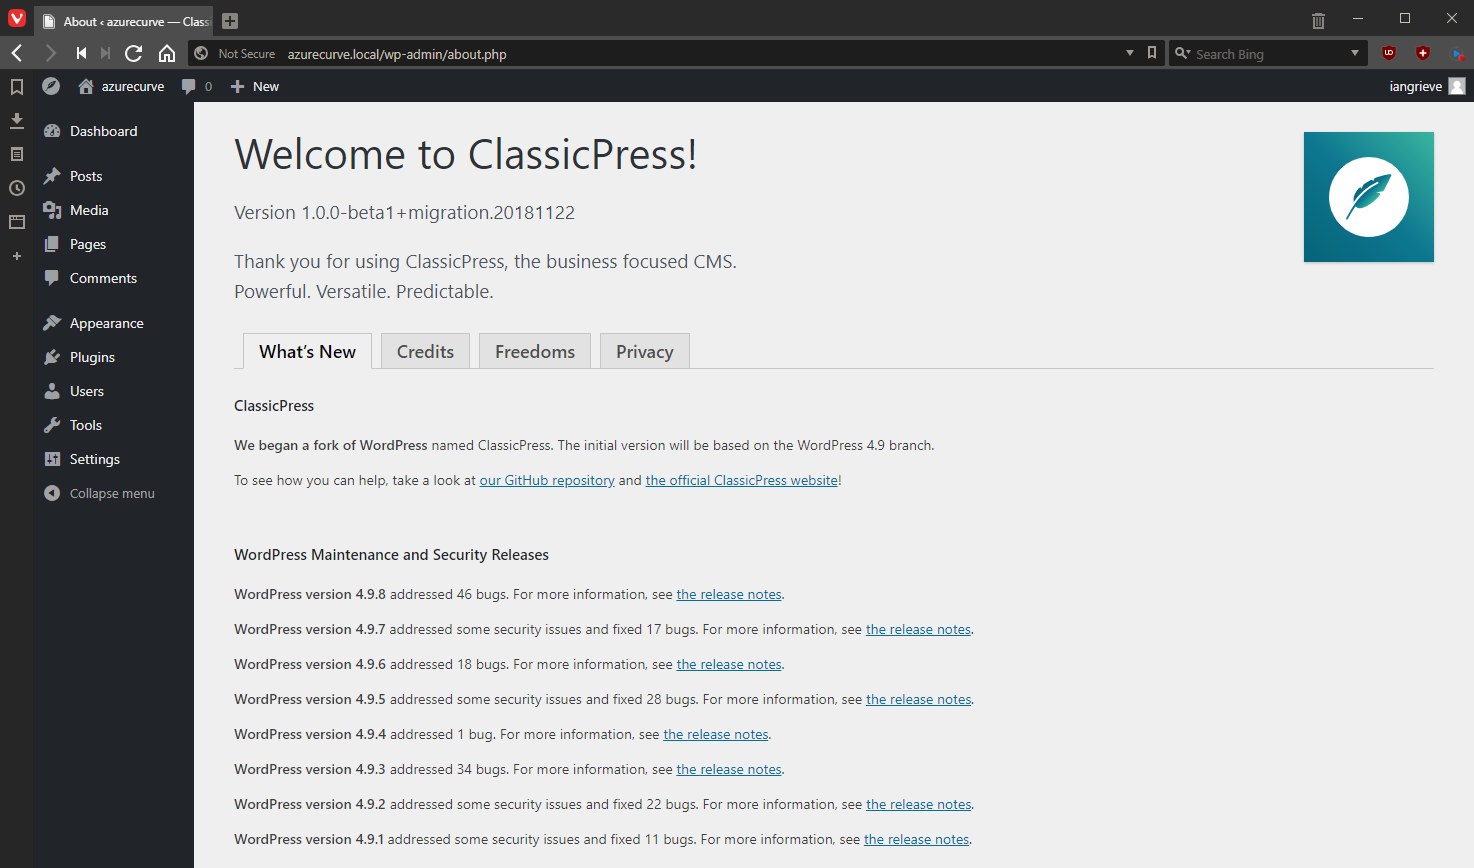 Welcome to ClassicPress!